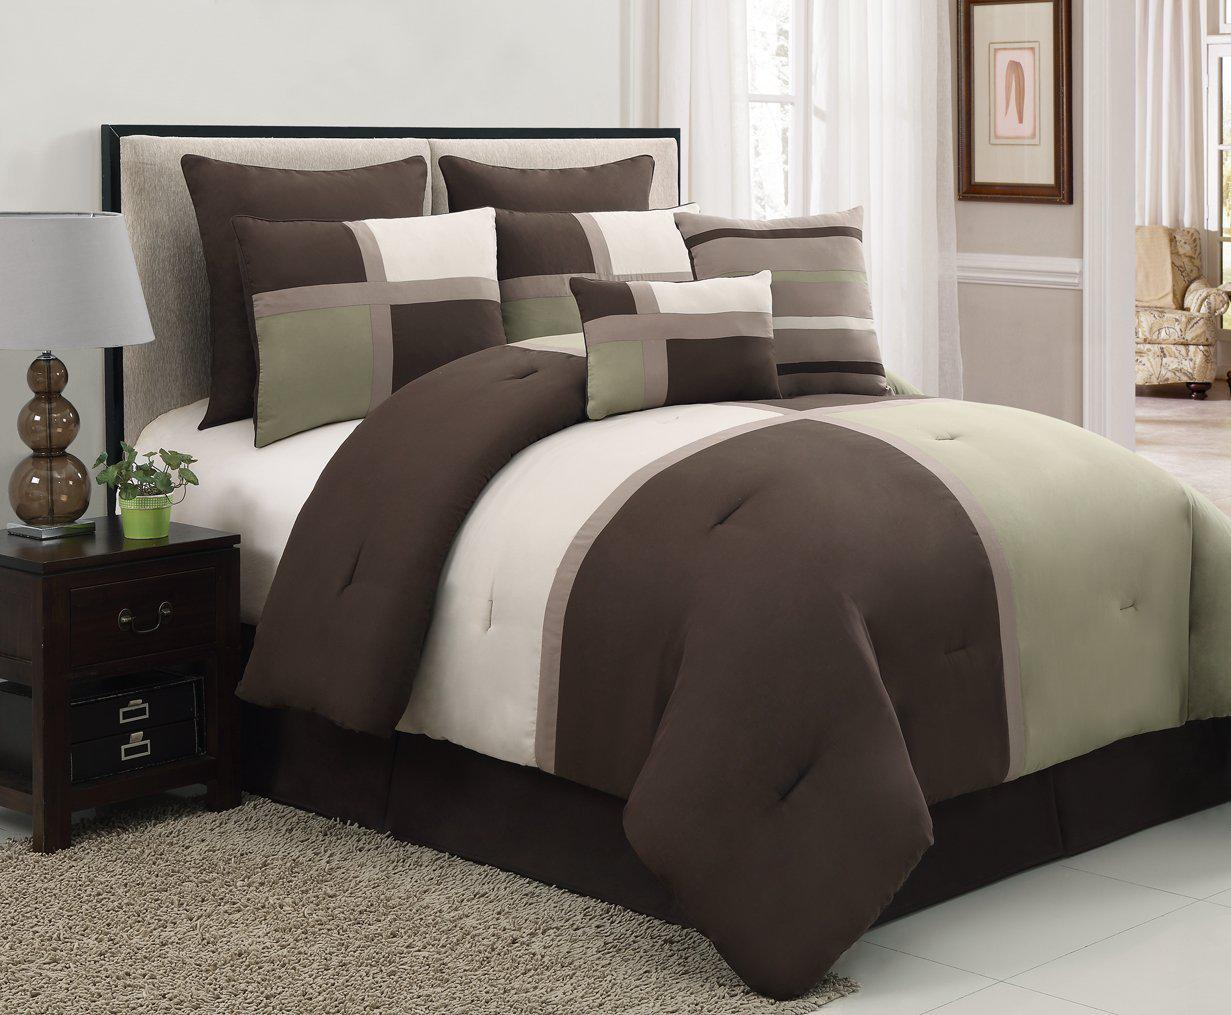 Bed Bath and Beyond Queen Comforter | Discount Comforter Sets | Luxury Comforter Sets